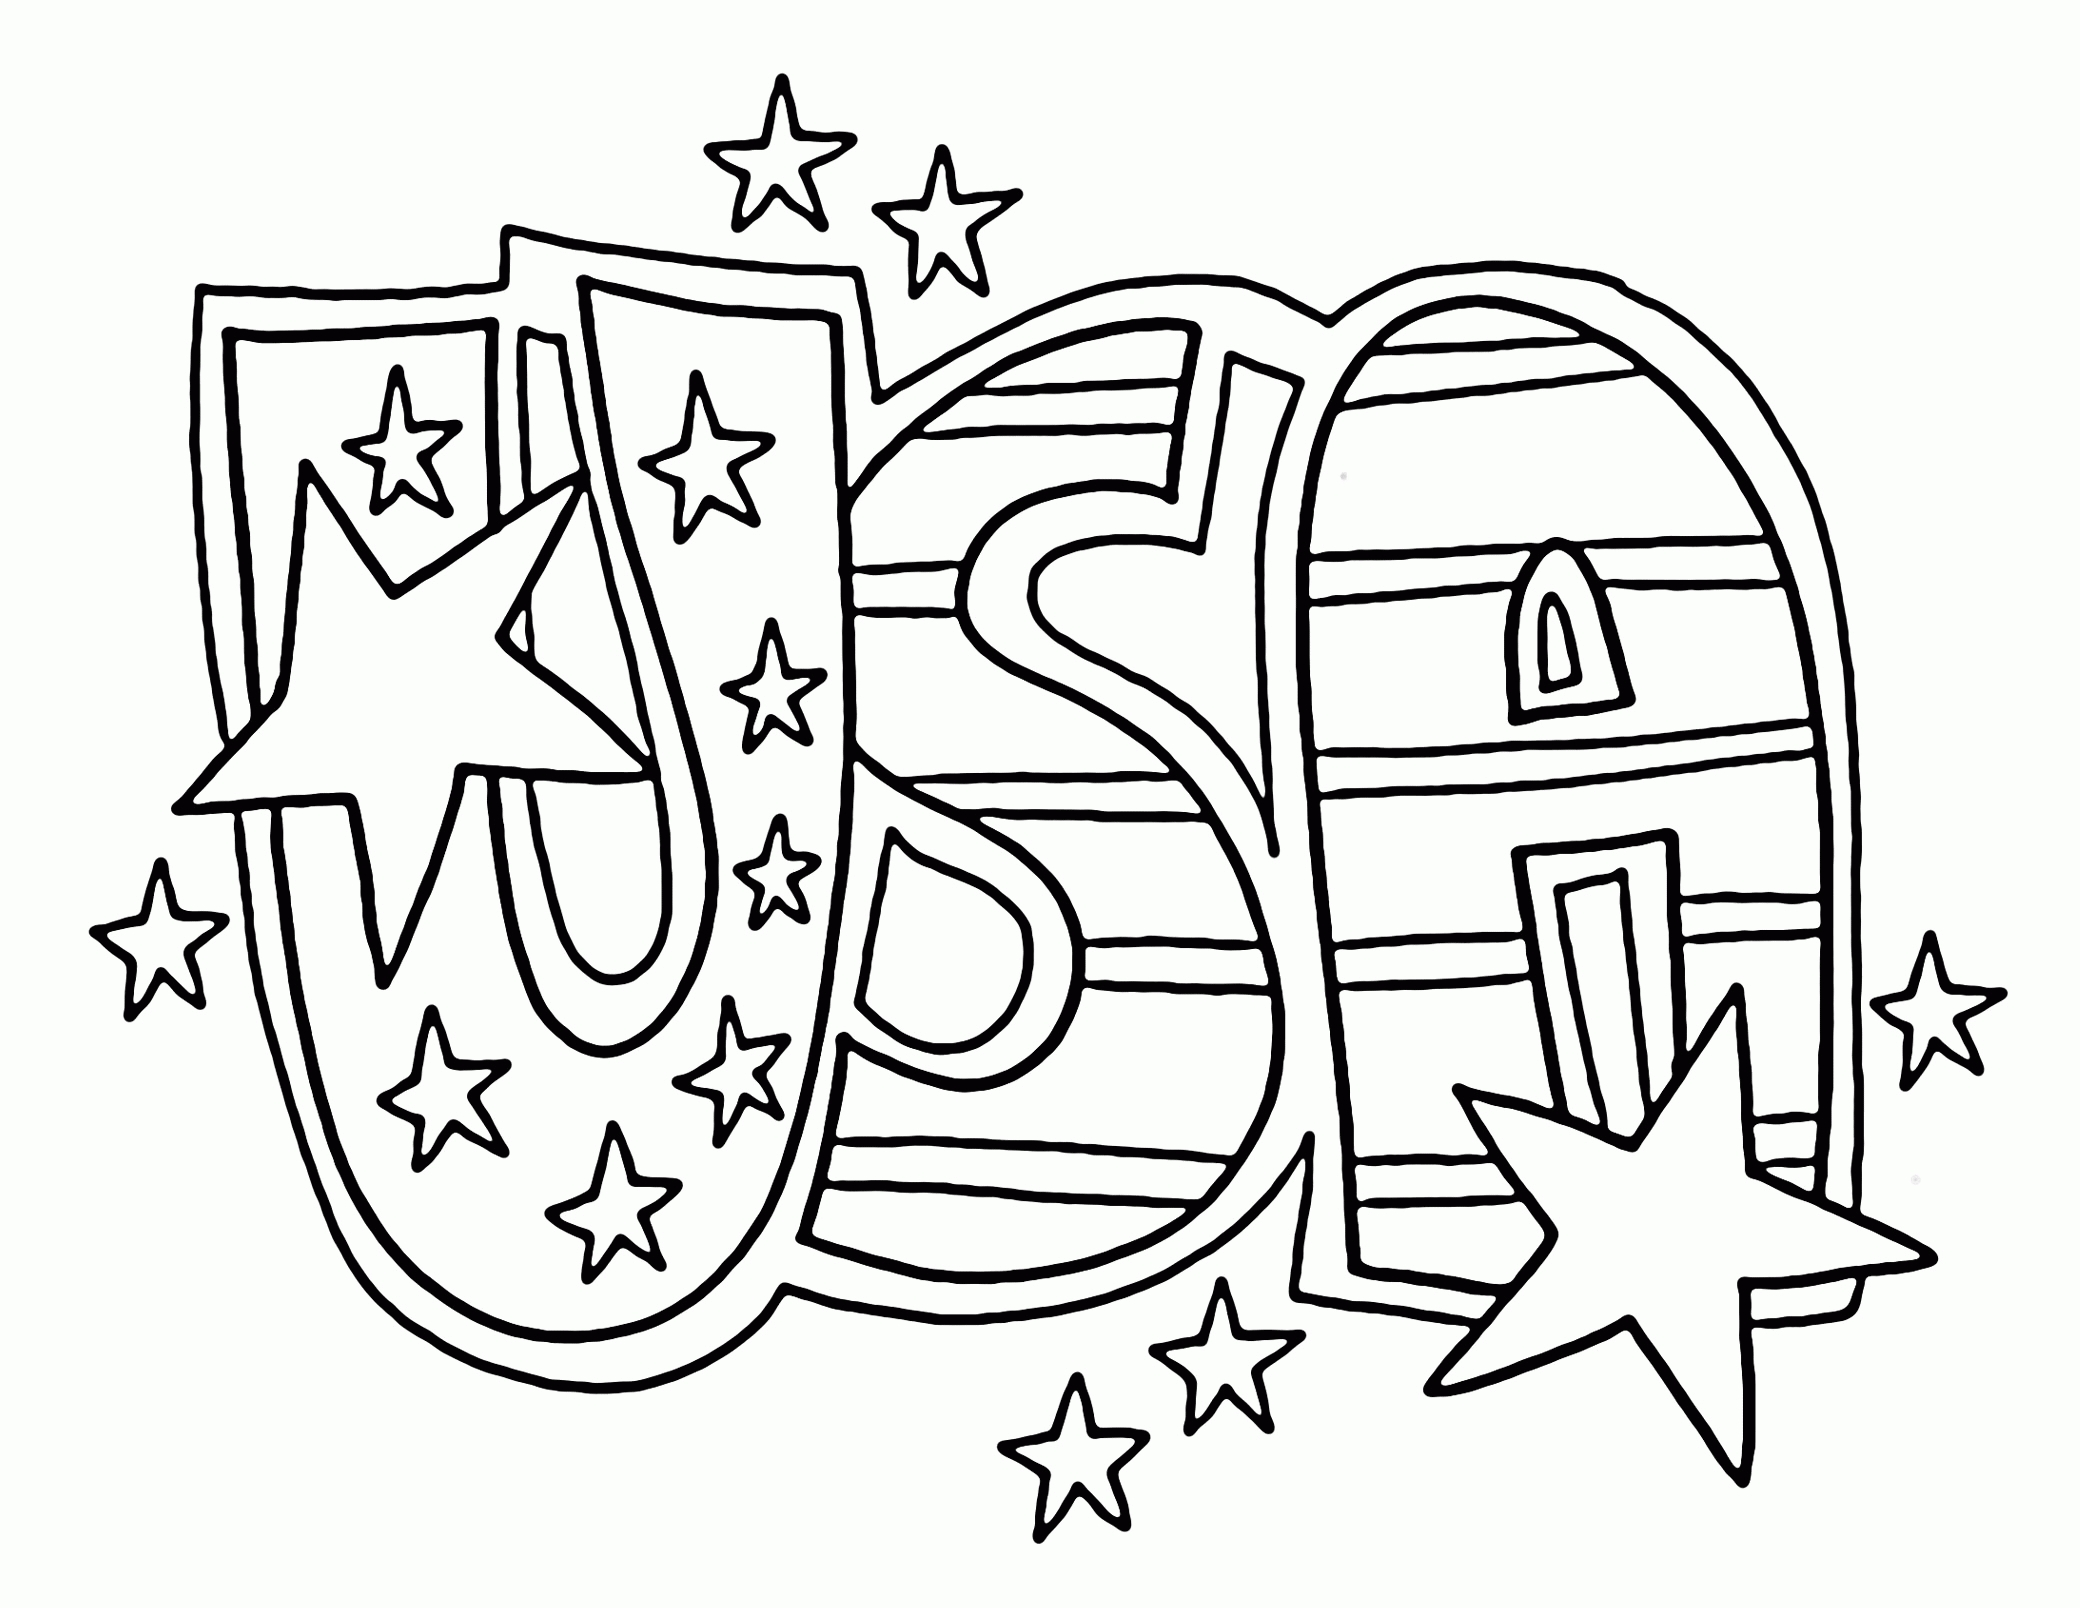 usa coloring pages - usa coloring page